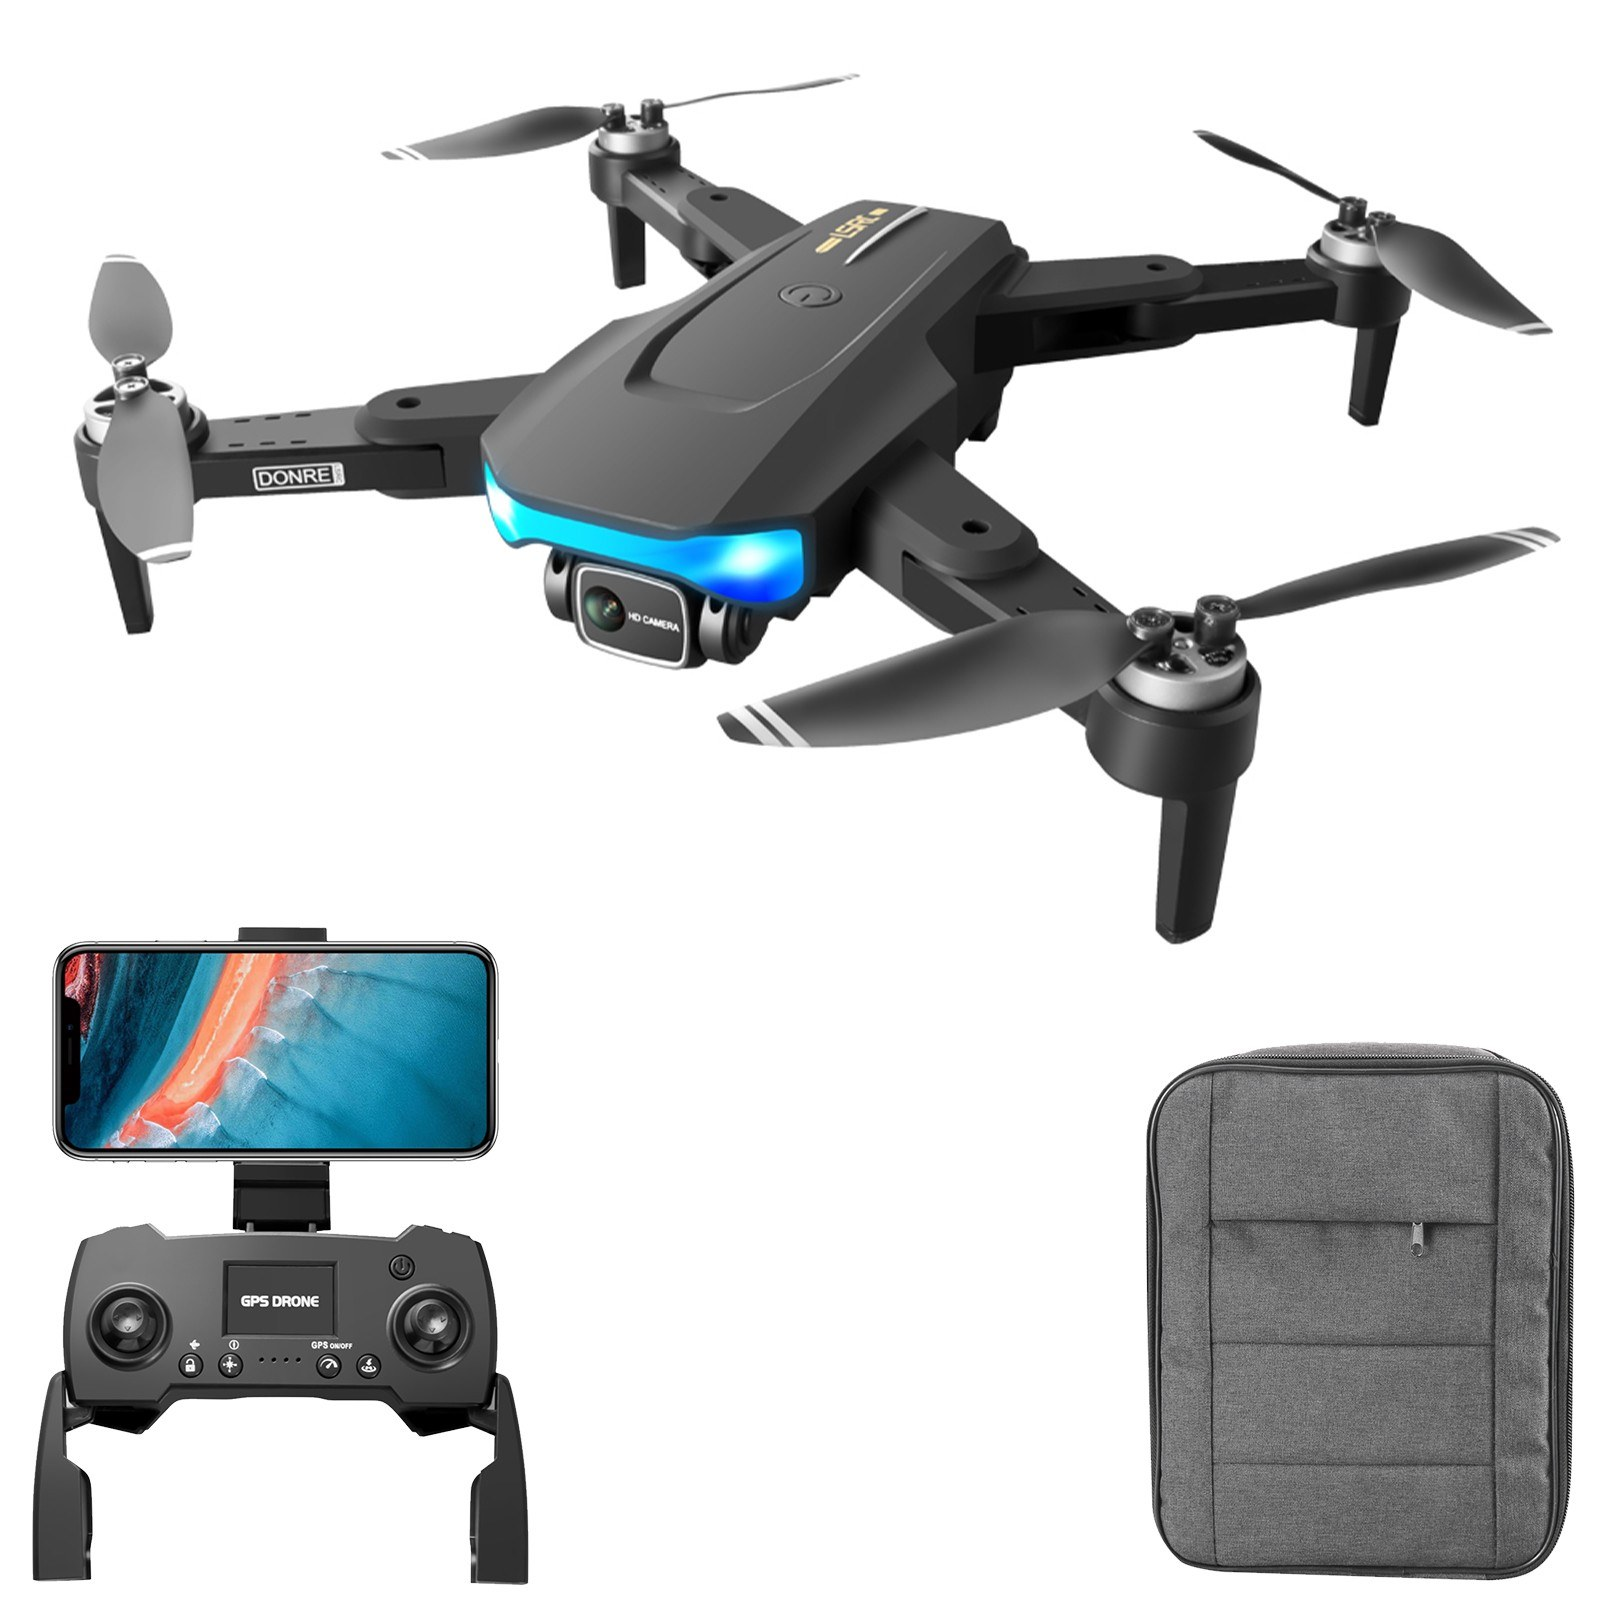 Tomtop - 55% OFF LS-38 5G Wifi GPS FPV 6K Camera RC Drone, Free Shipping $99.99